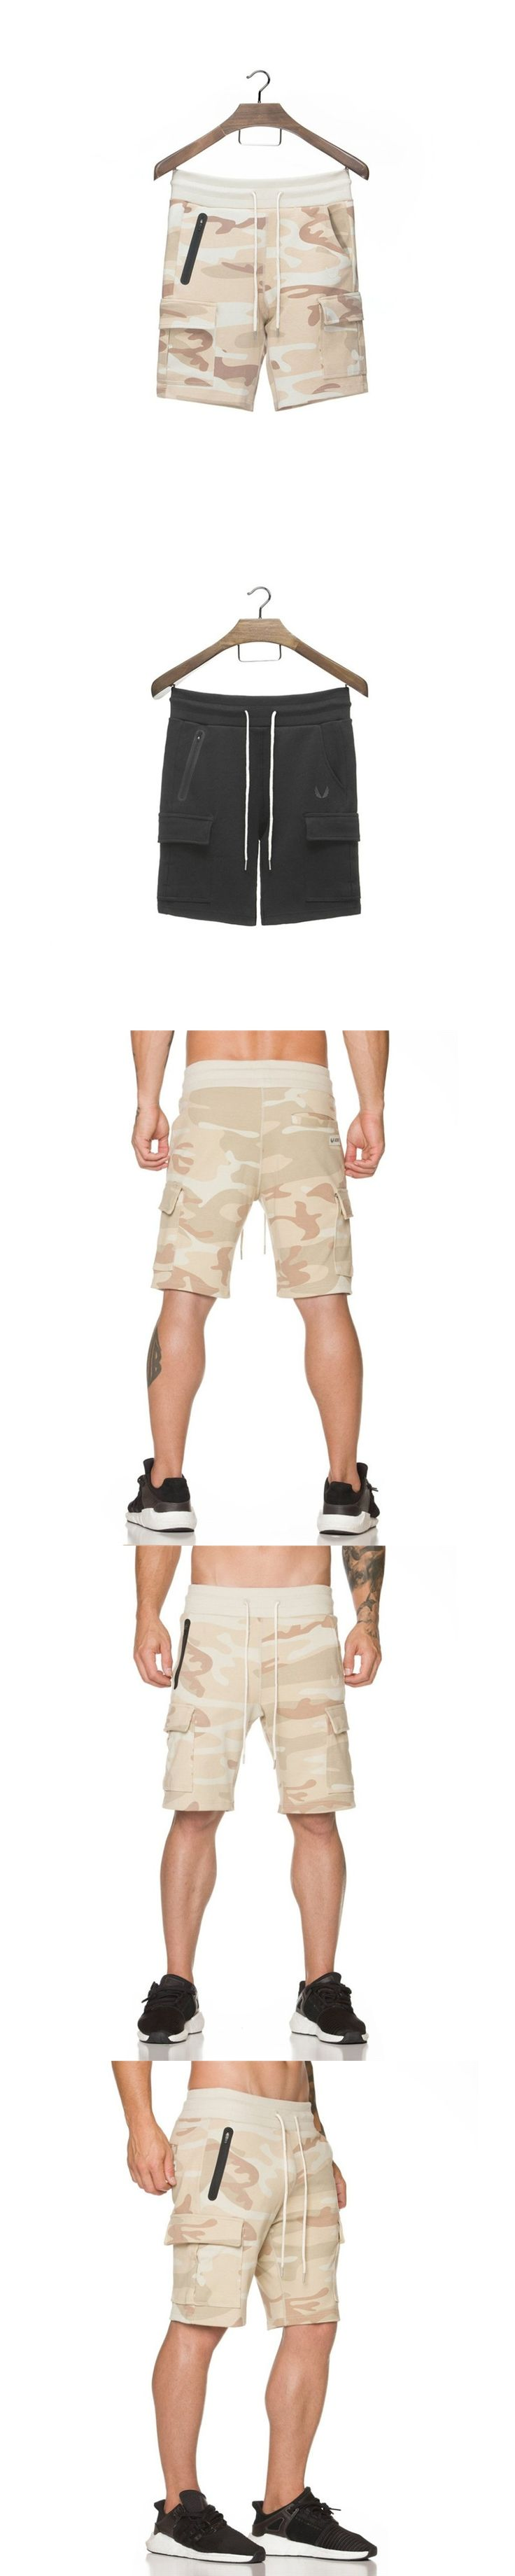 2017 New Men Camouflage Gyms Shorts Bodybuilding Calf Length Jogger Mens Shorts Sweatpants Fitness Man Workout Cotton Shorts